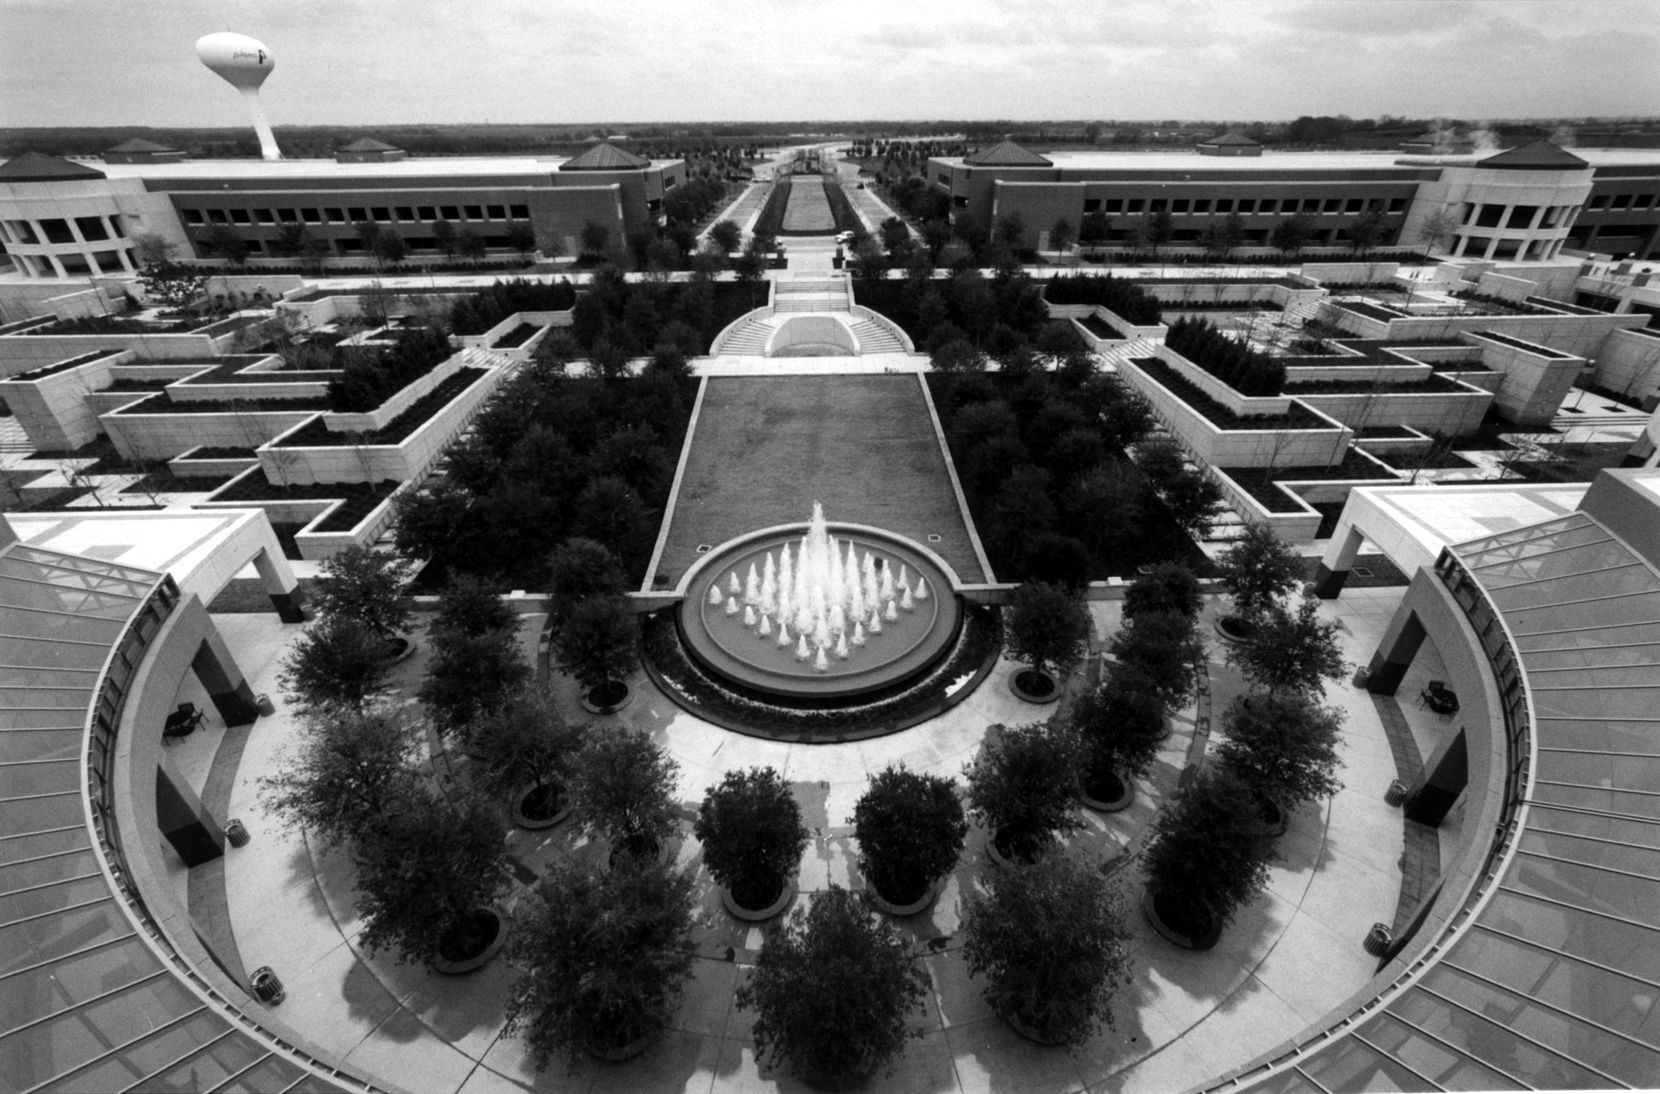 Jan. 7, 1993: A large garden is located at the rear entrance of the new J.C. Penney headquarters. The area, which is adjacent to the company dining area, has a fountain and will give employees and visitors a place to relax.